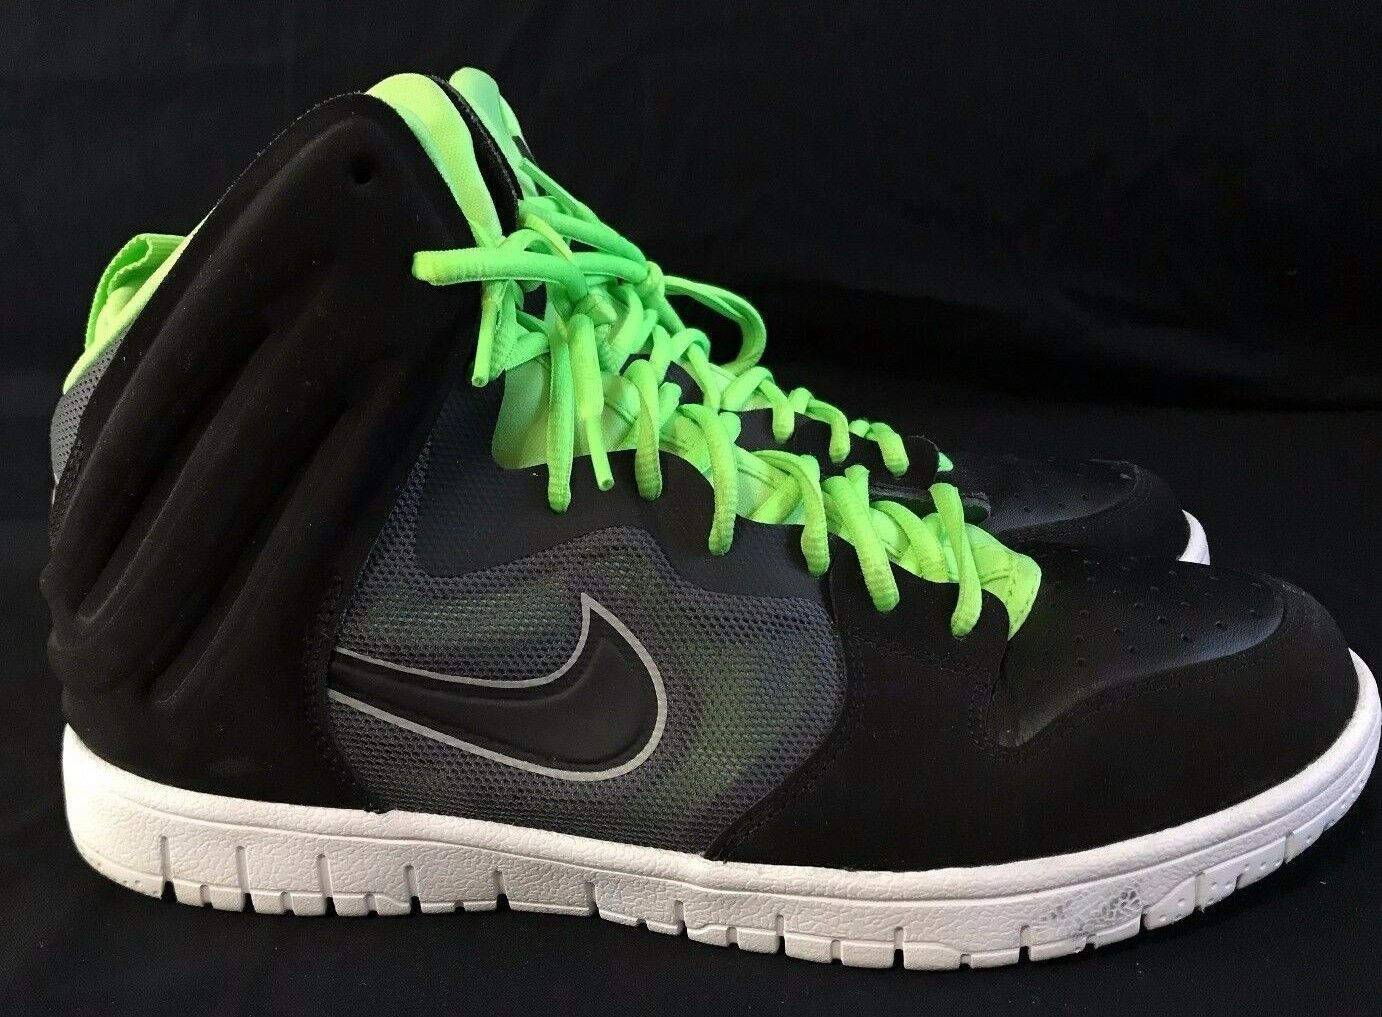 **NIKE** DUNK FREE MENS SHOES BLACK GREEN - SIZE 10